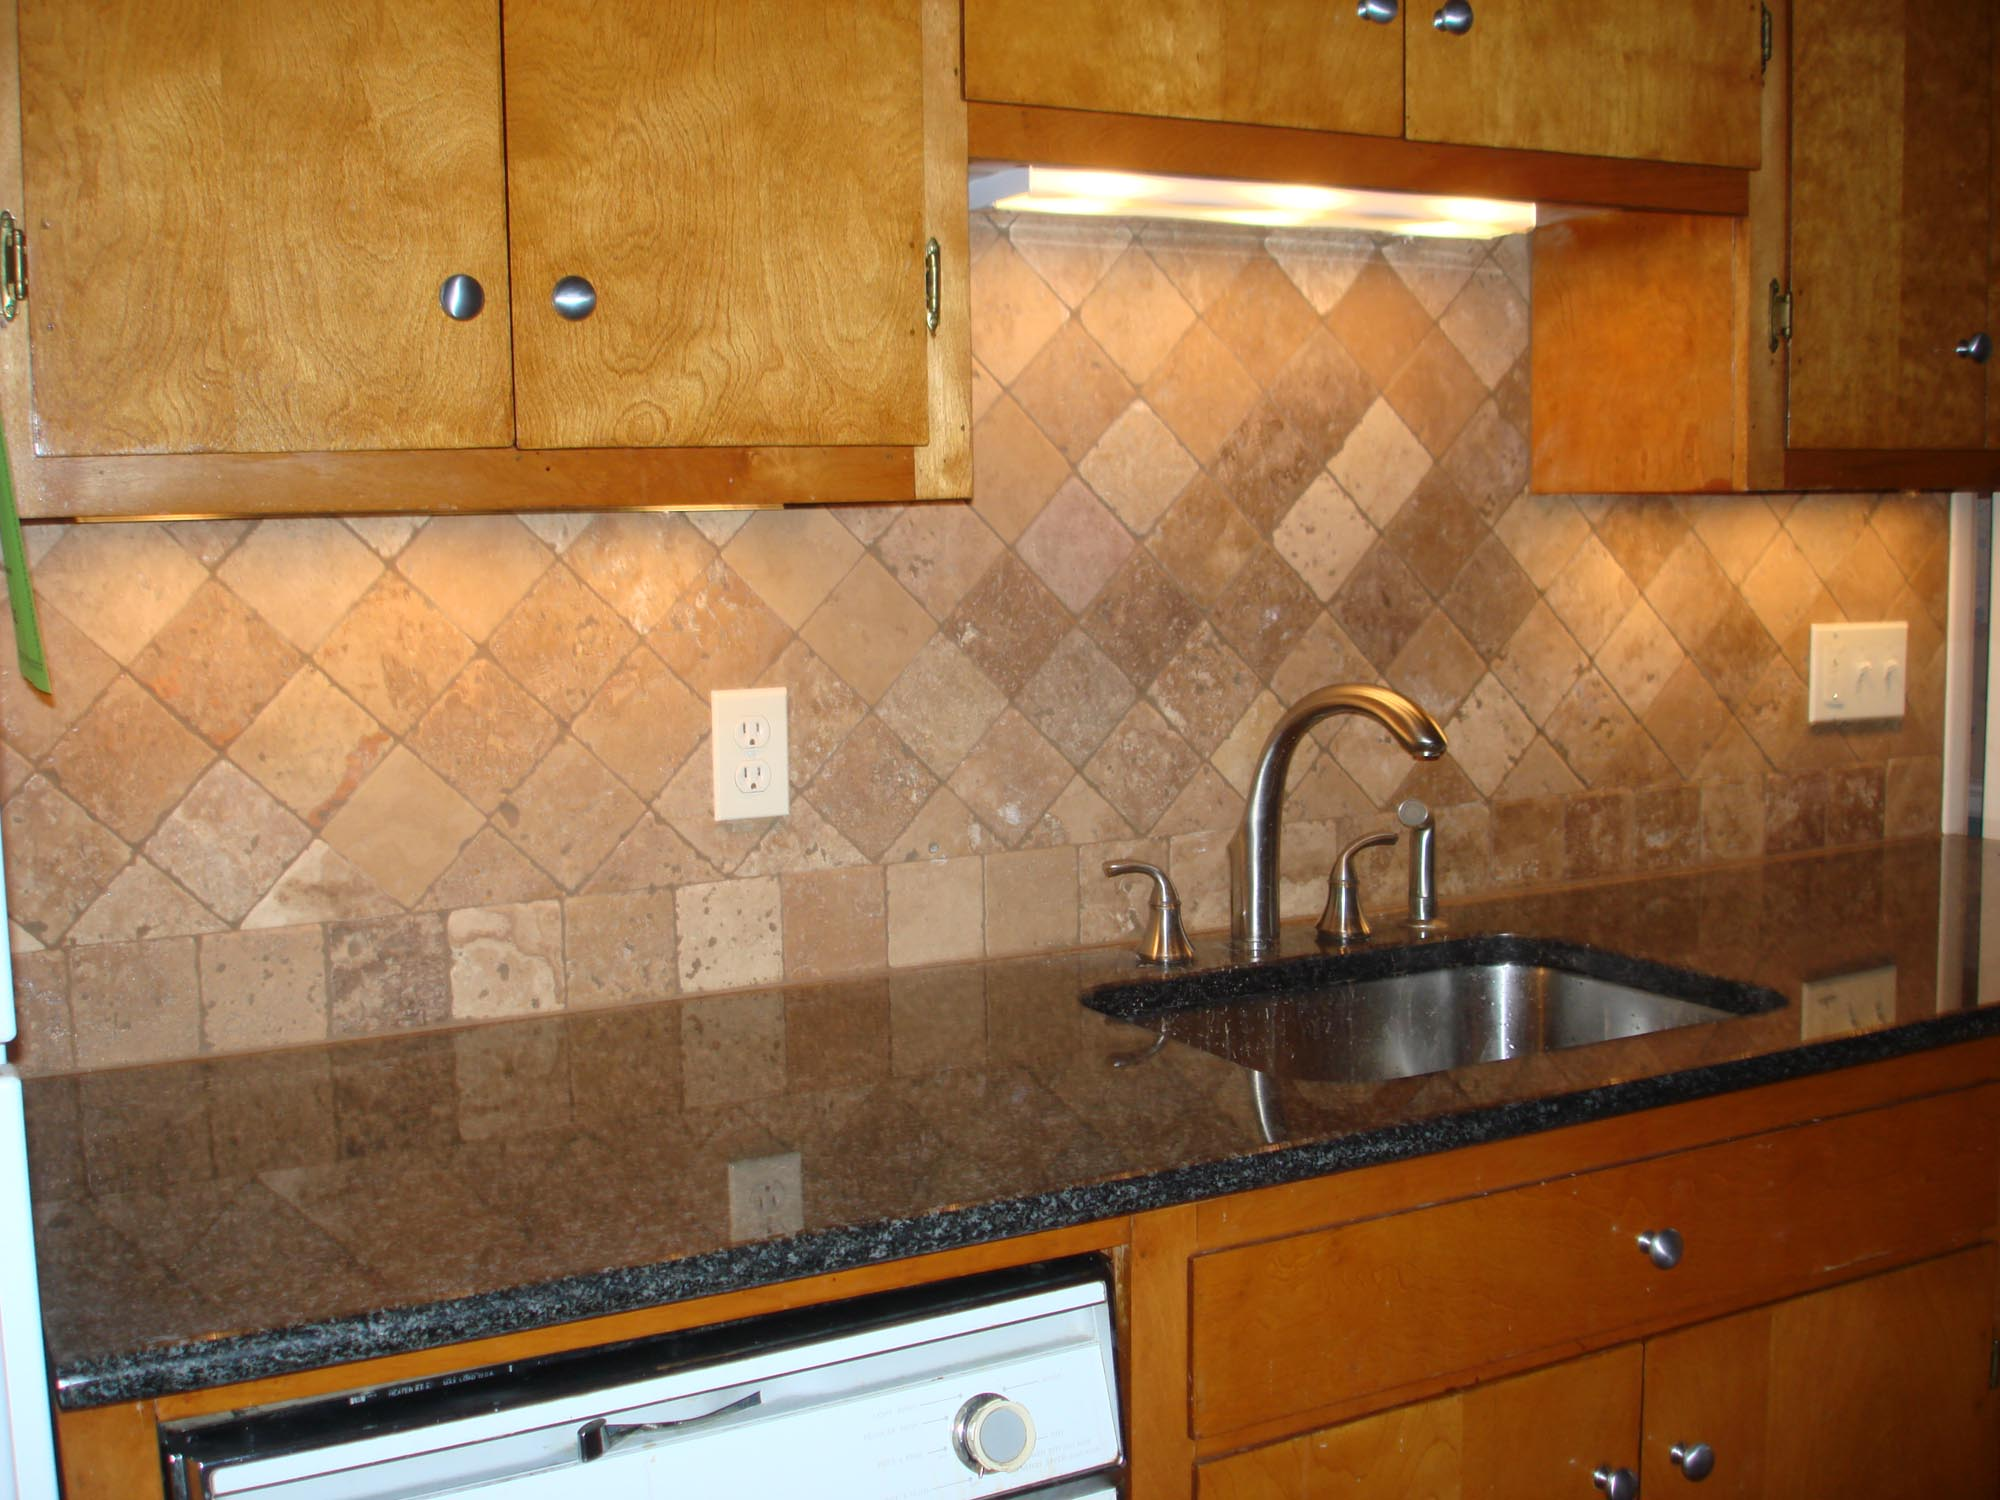 Travertine Stone Backsplash : Tumbled travertine kitchen backsplash on diagonal new